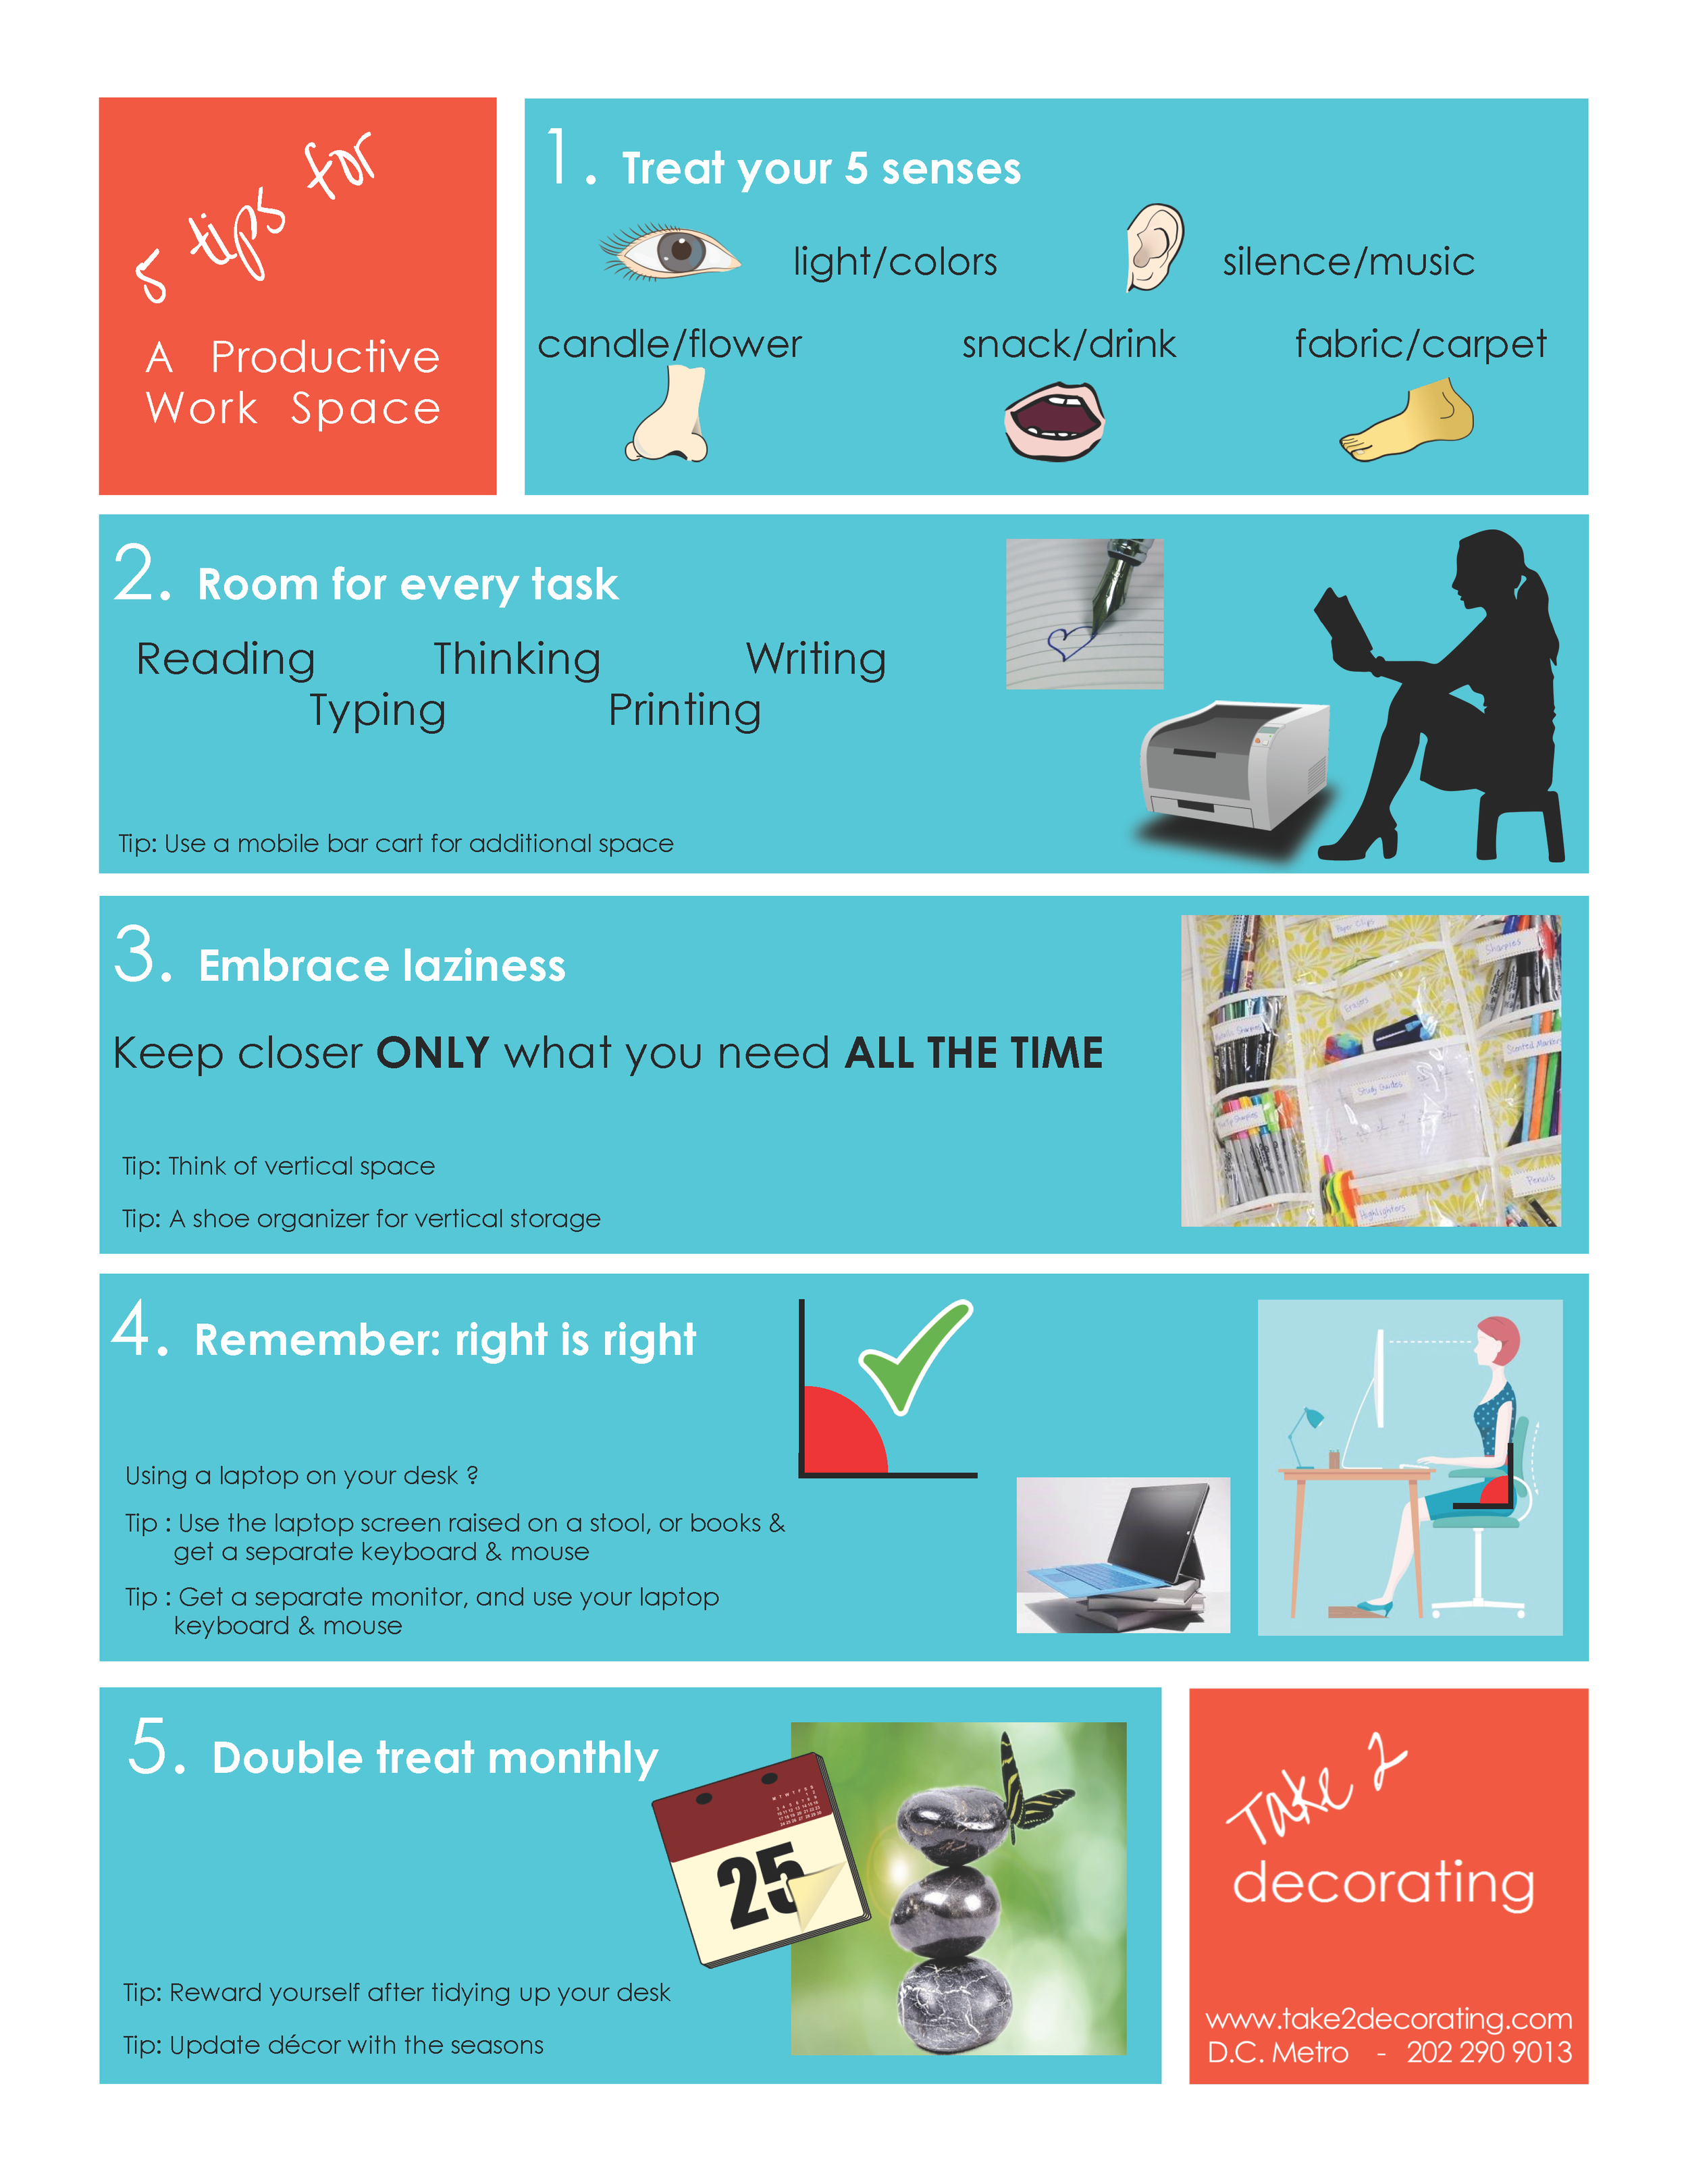 Take 2 Tips - Productive Work Space.png